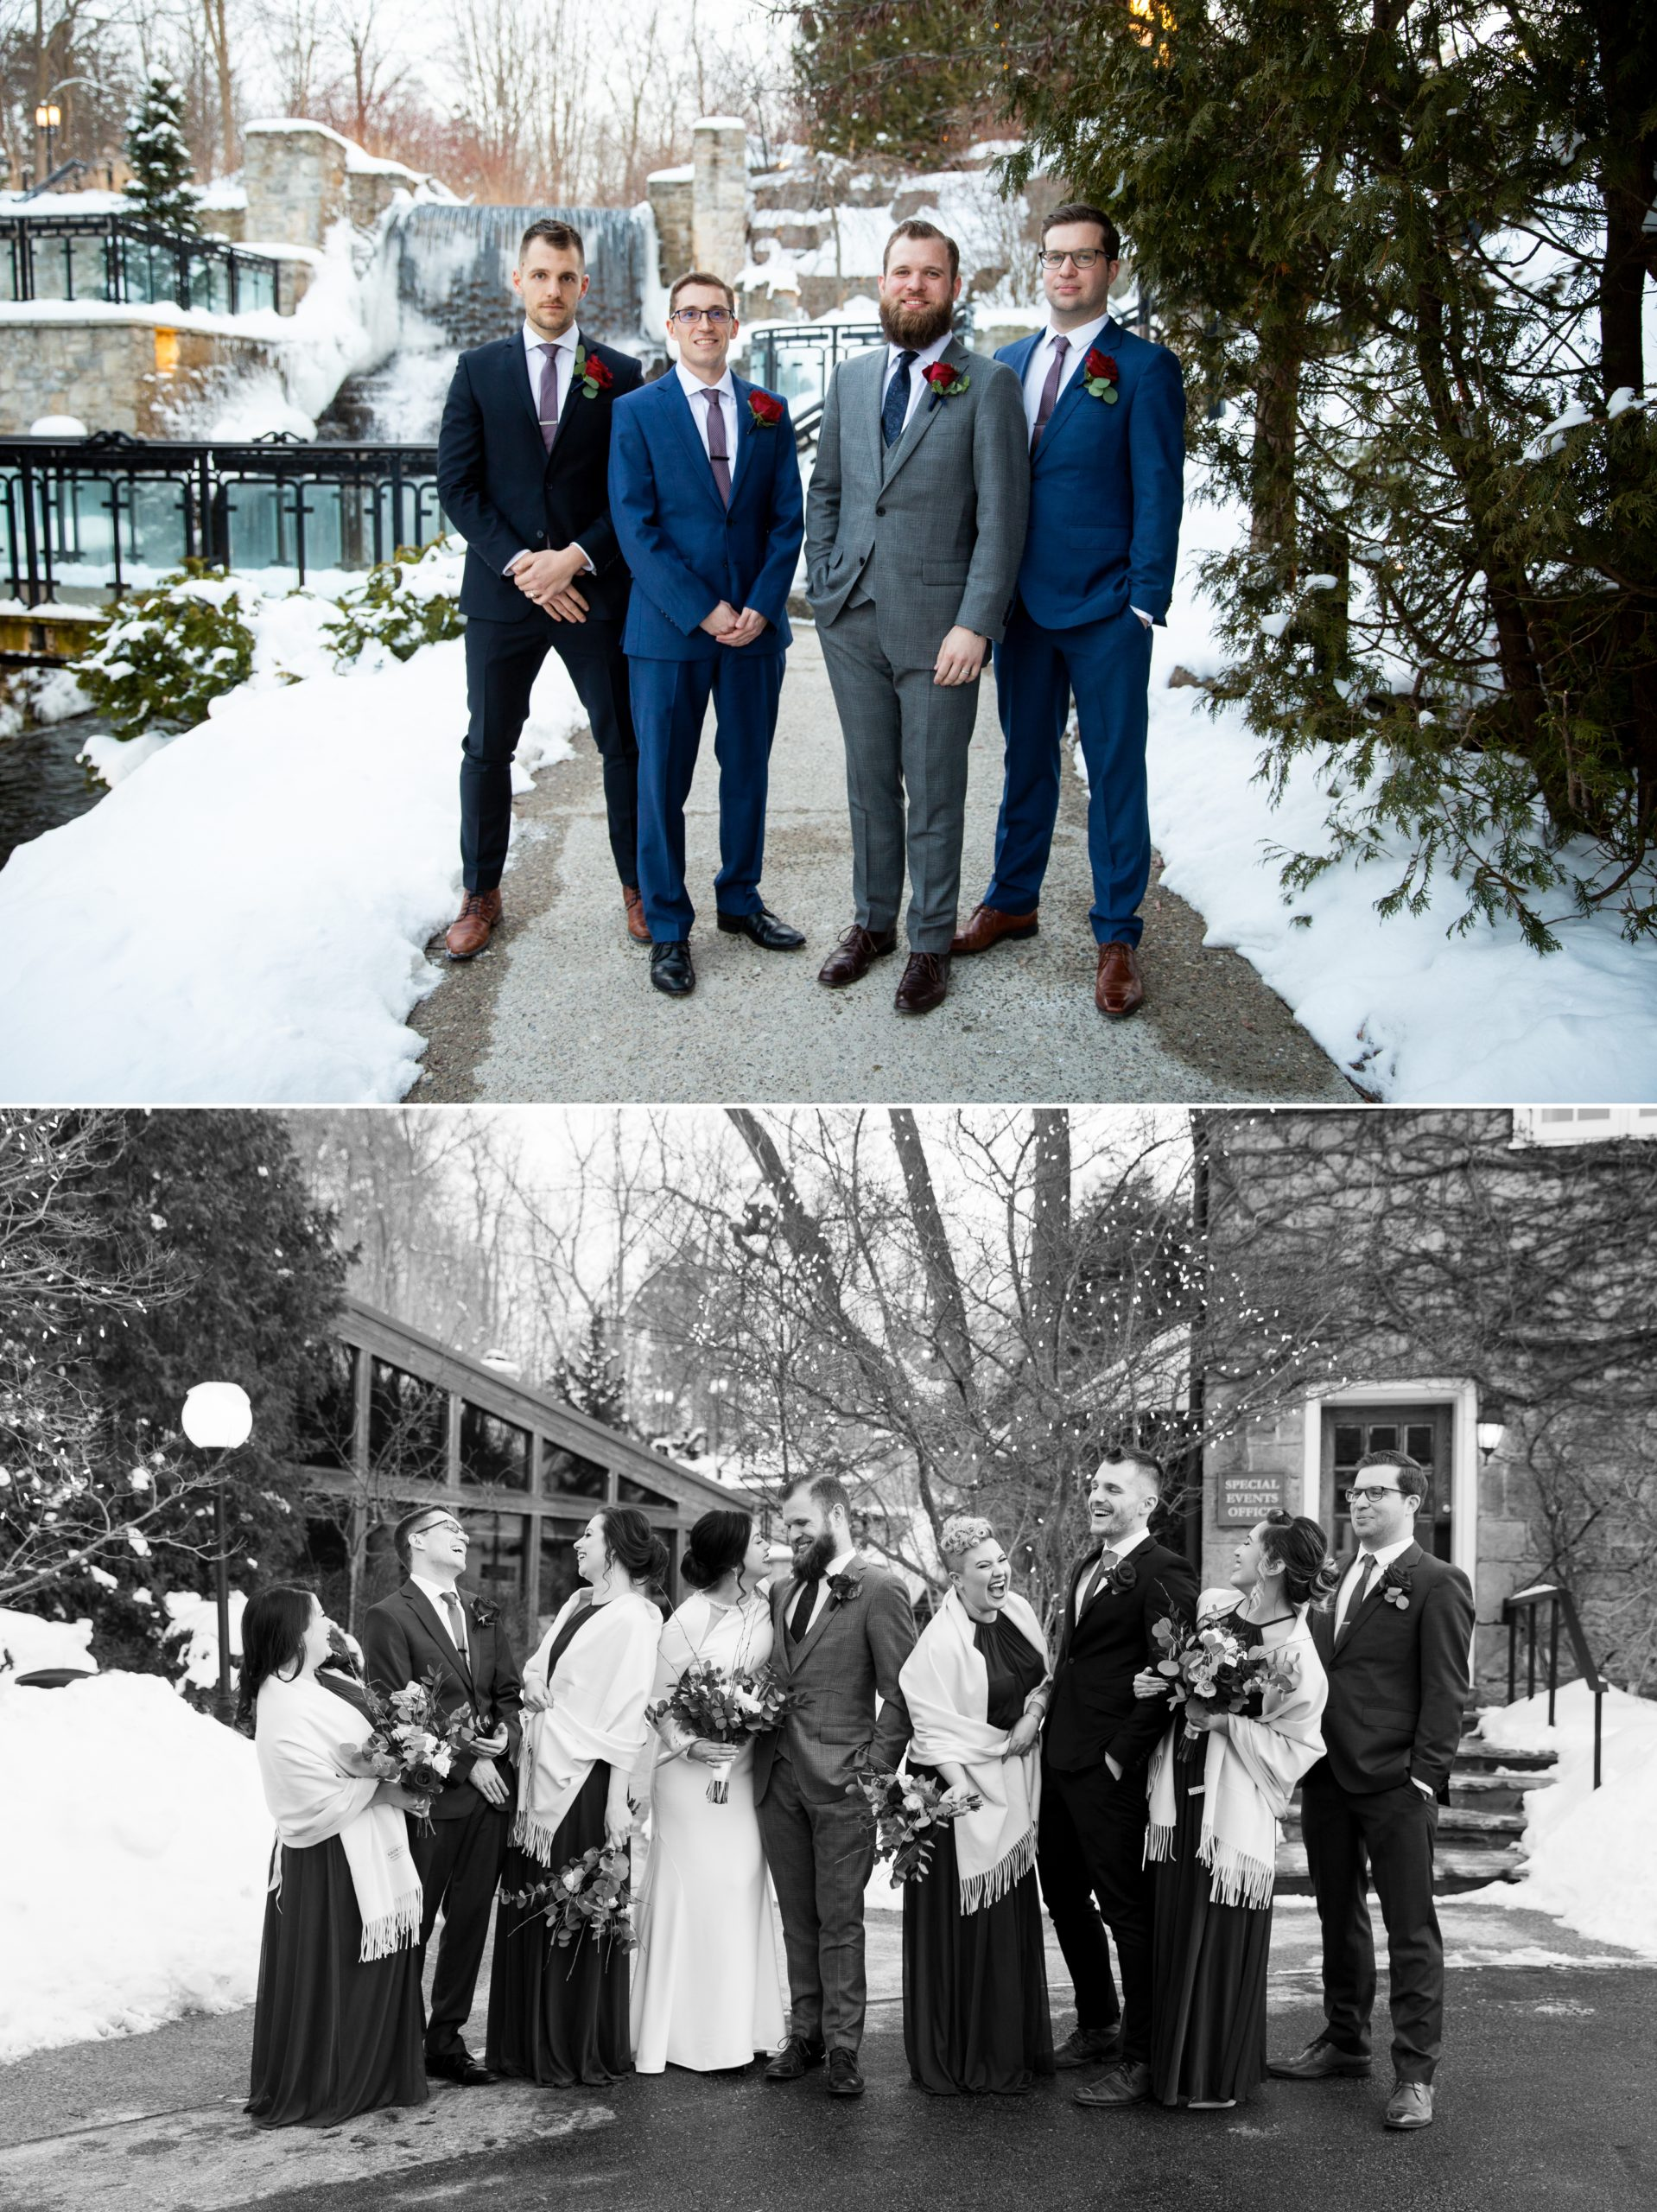 Groomsmen Wedding Party Ancaster Mill Winter Ancaster, Hamilton, Zsuzsi Pal Photography